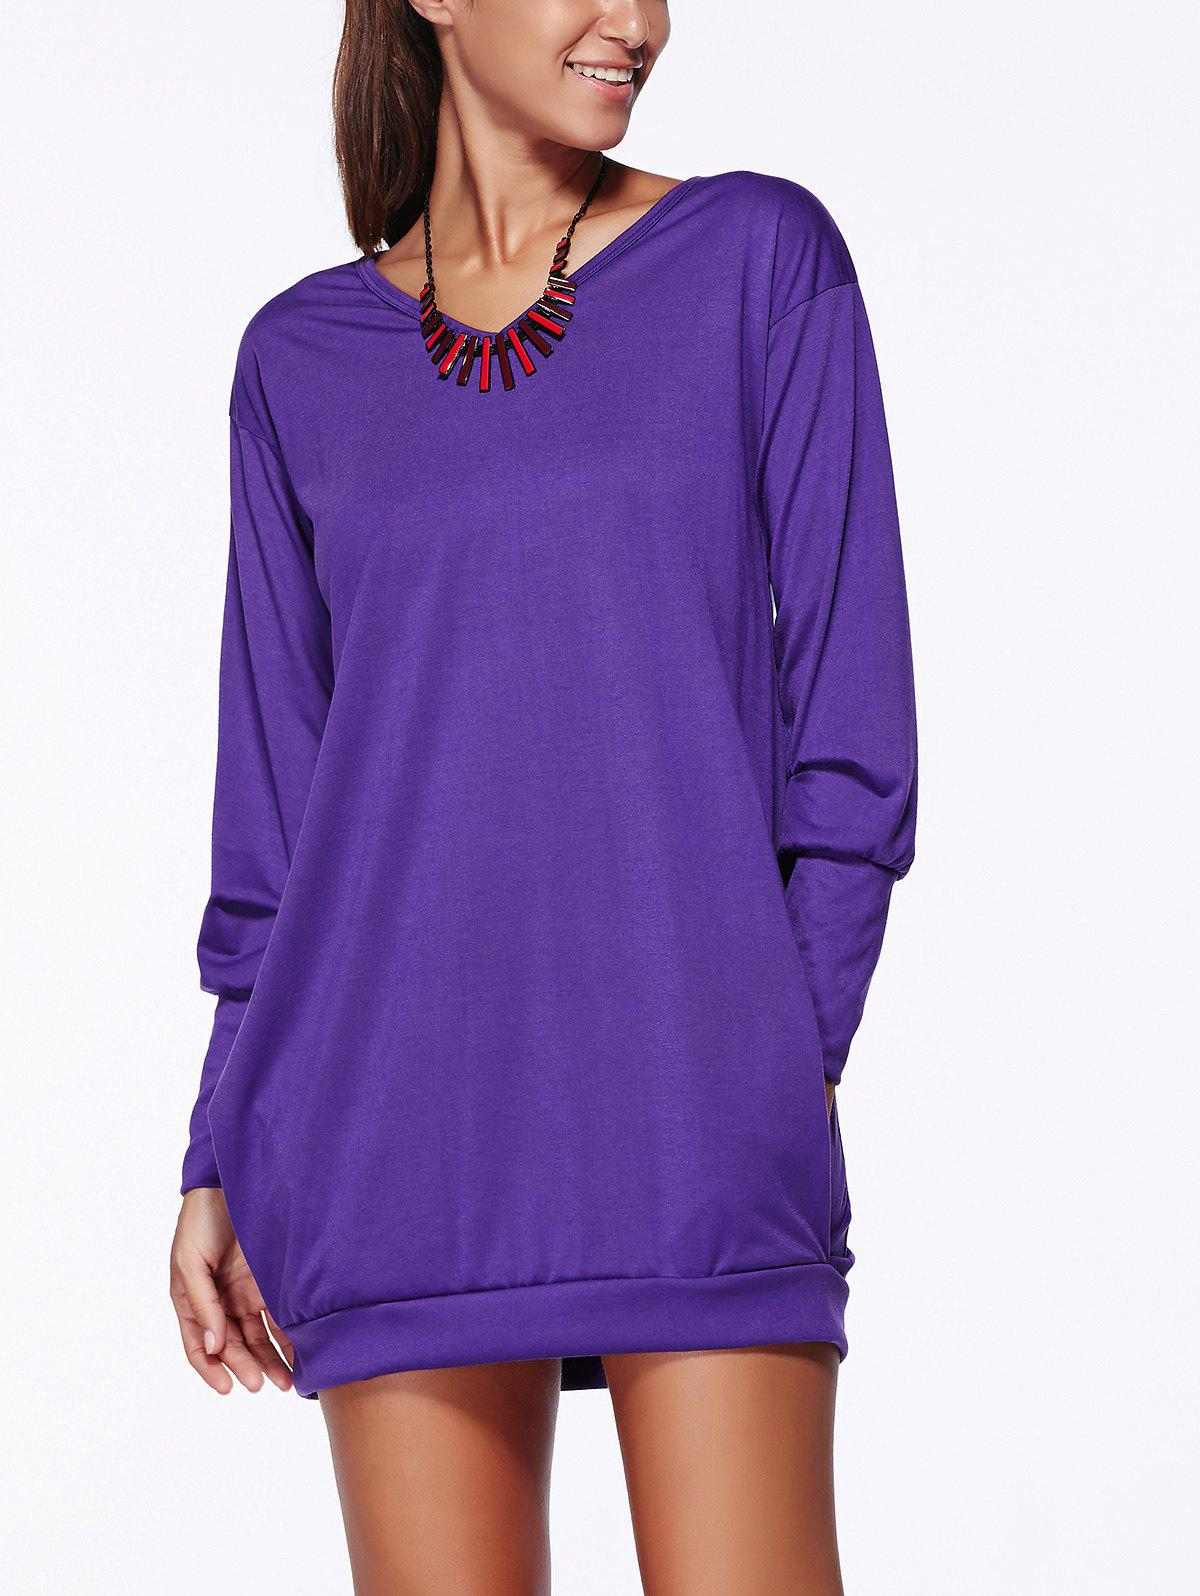 Stylish V Neck Long Sleeve Pocket Design Solid Color Women's Dress - S PURPLE